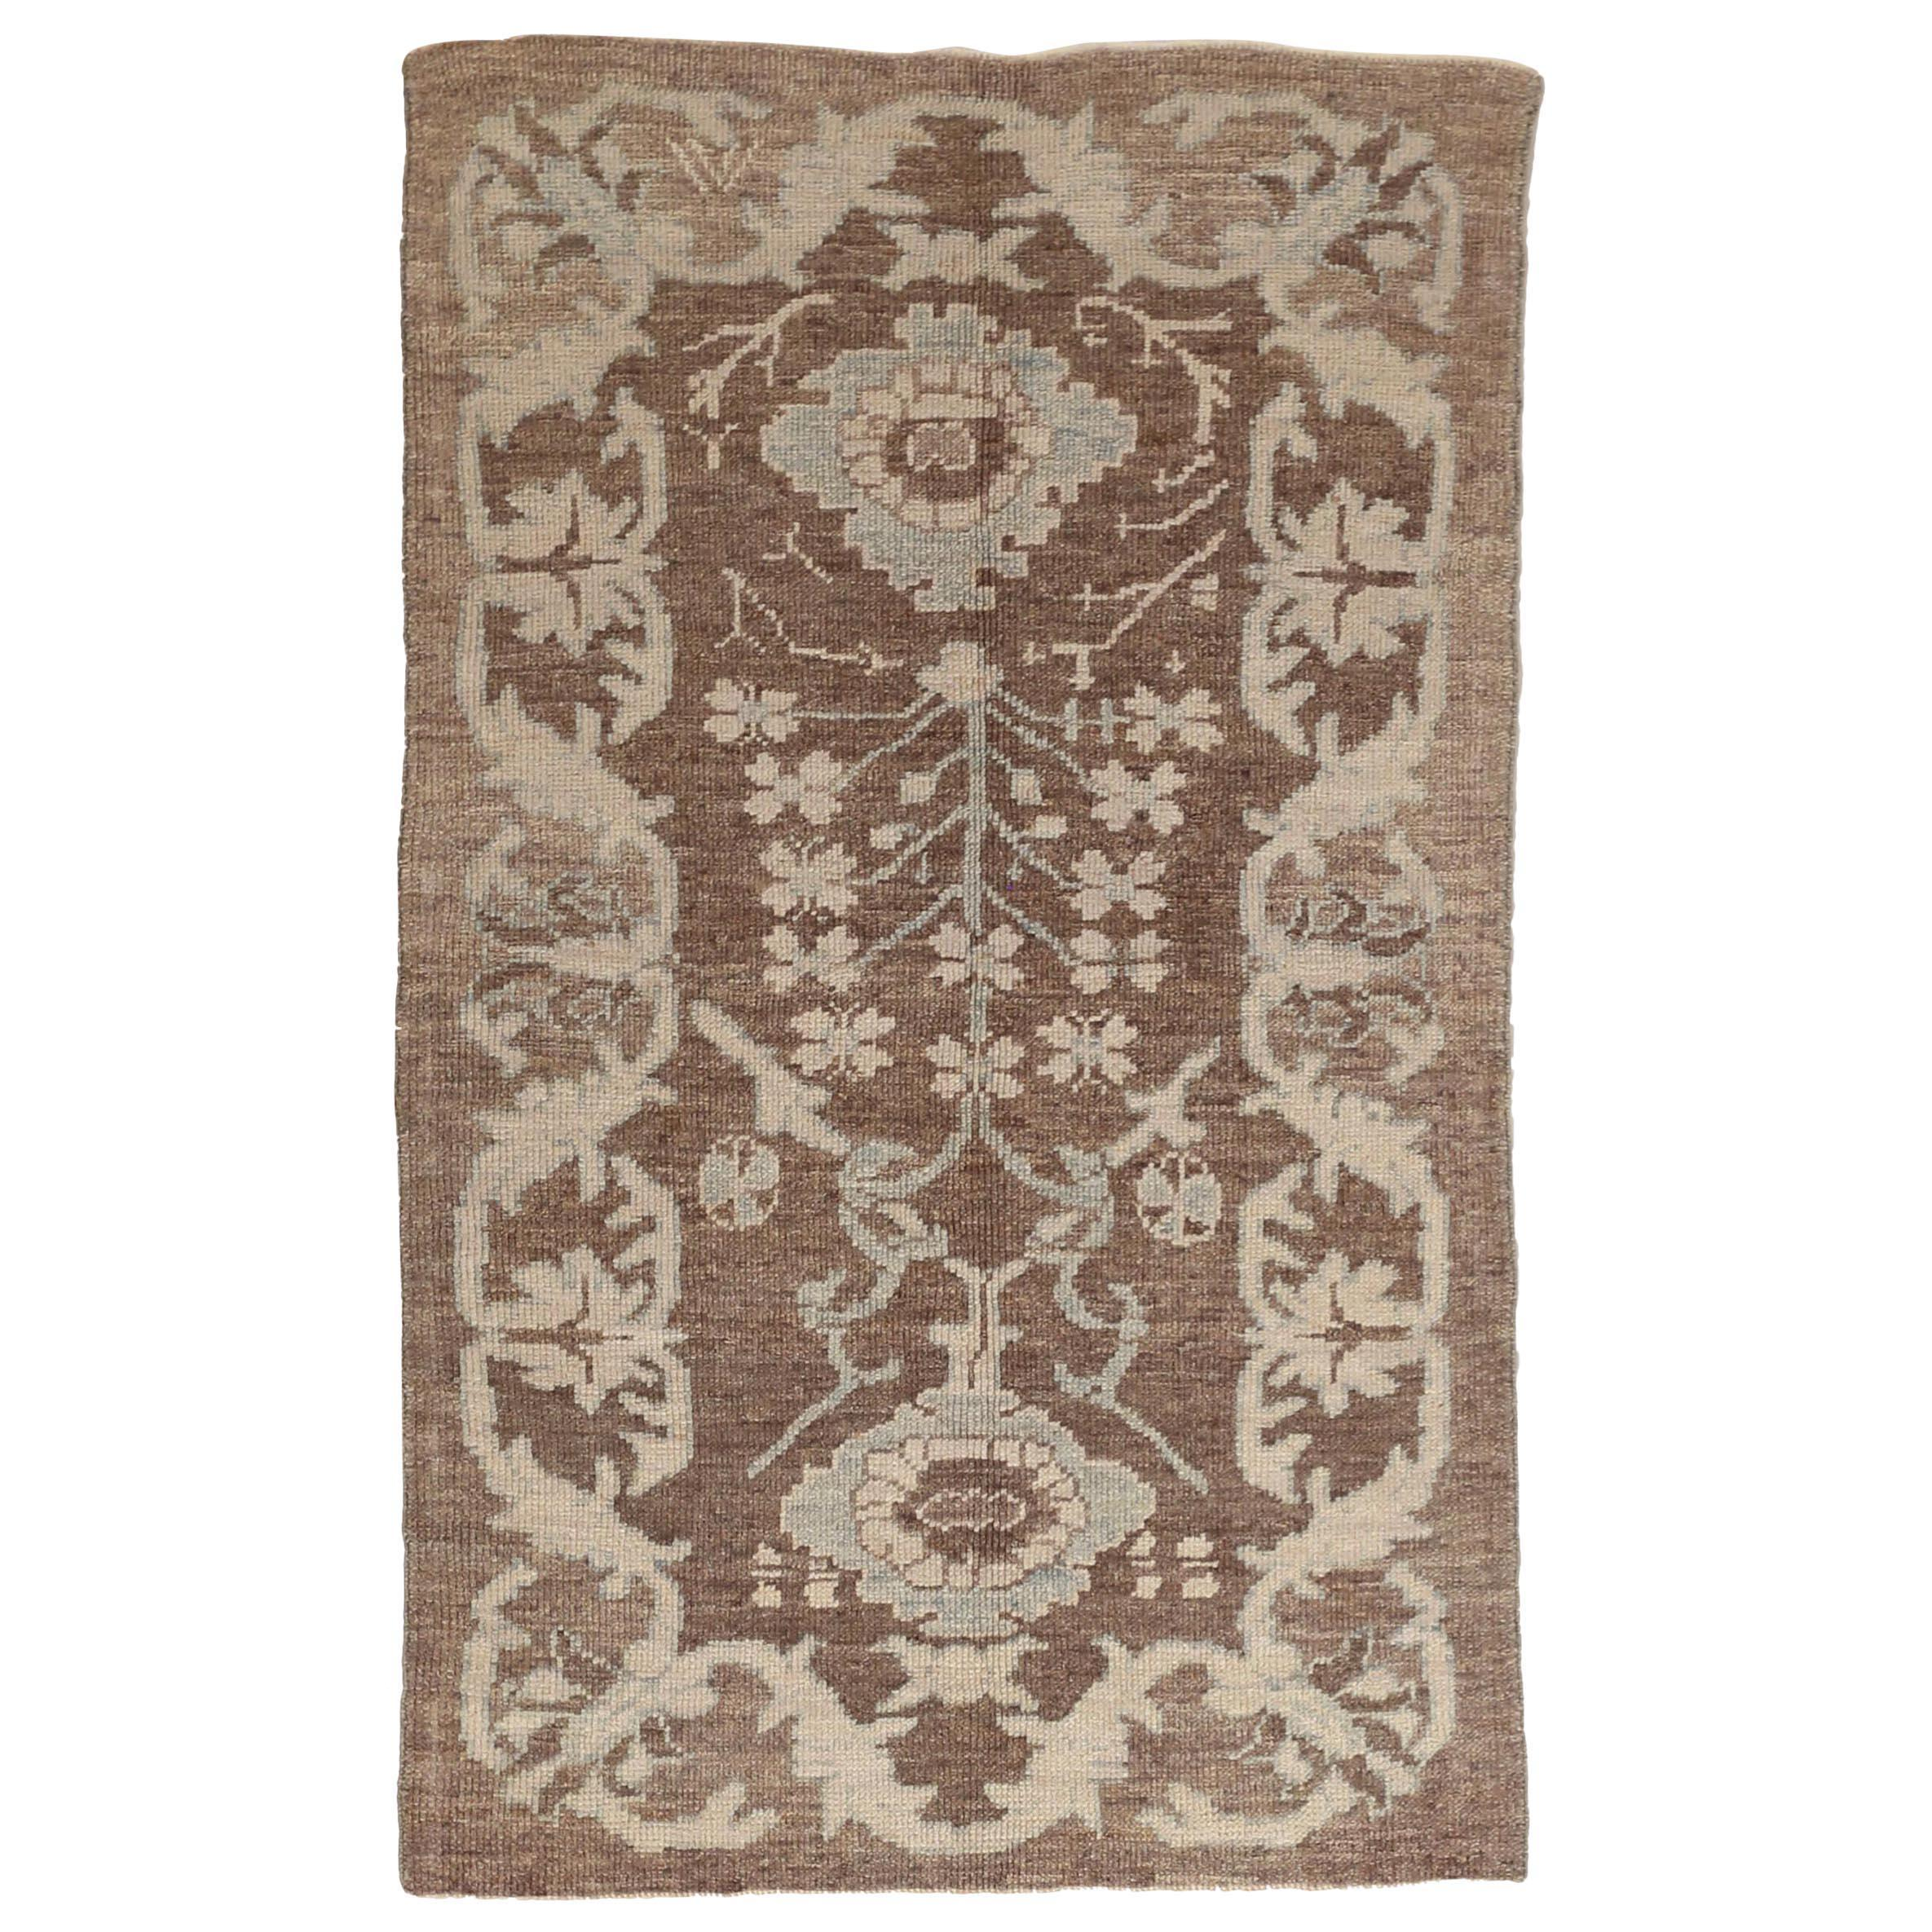 New Oushak Persian Rug with Floral Field and Border in Ivory and Blue